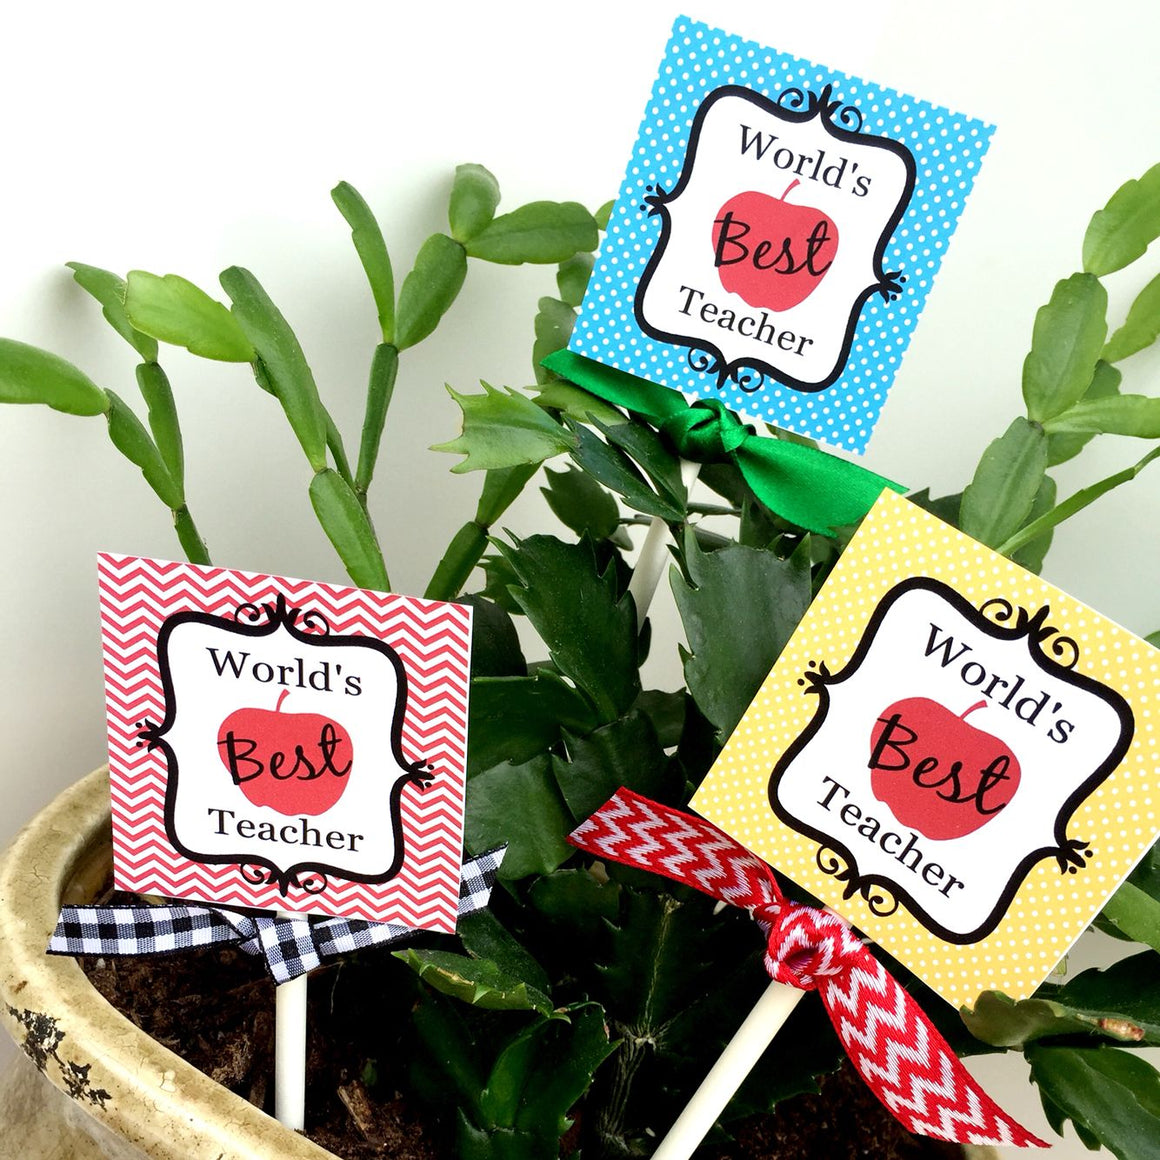 Prinable Teacher Appreciation Tags, World's Best Teacher Gift Tags, Teacher Appreciation Plant Stake Tags by SUNSHINETULIPDESIGN